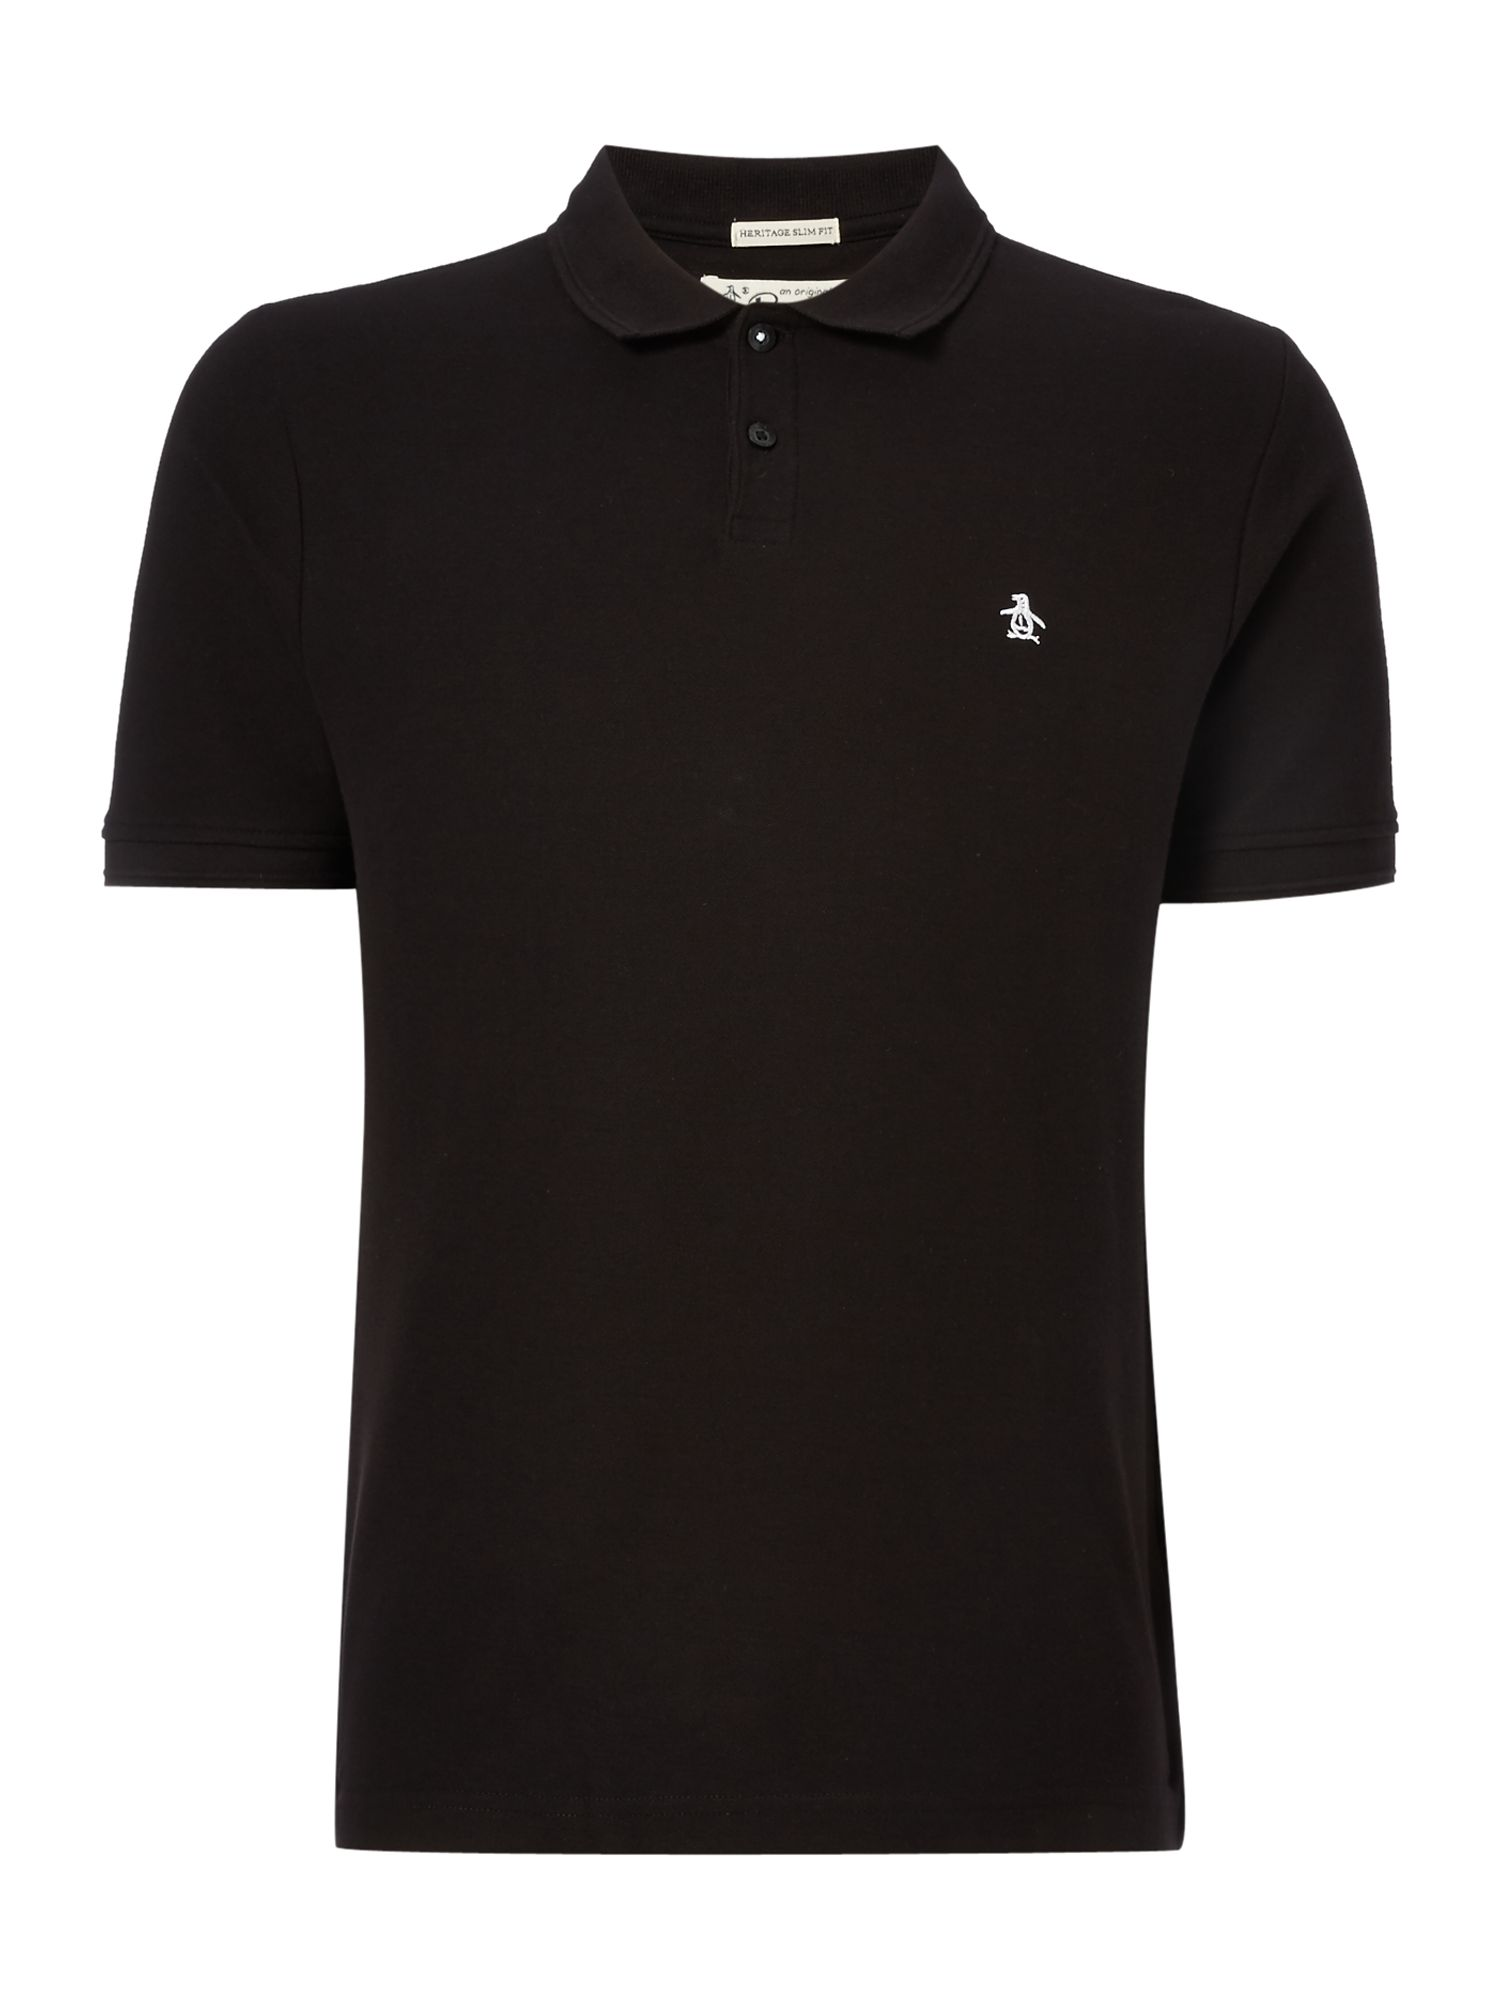 Men's Original Penguin Cotton Raised-Rib short sleeve polo, Black